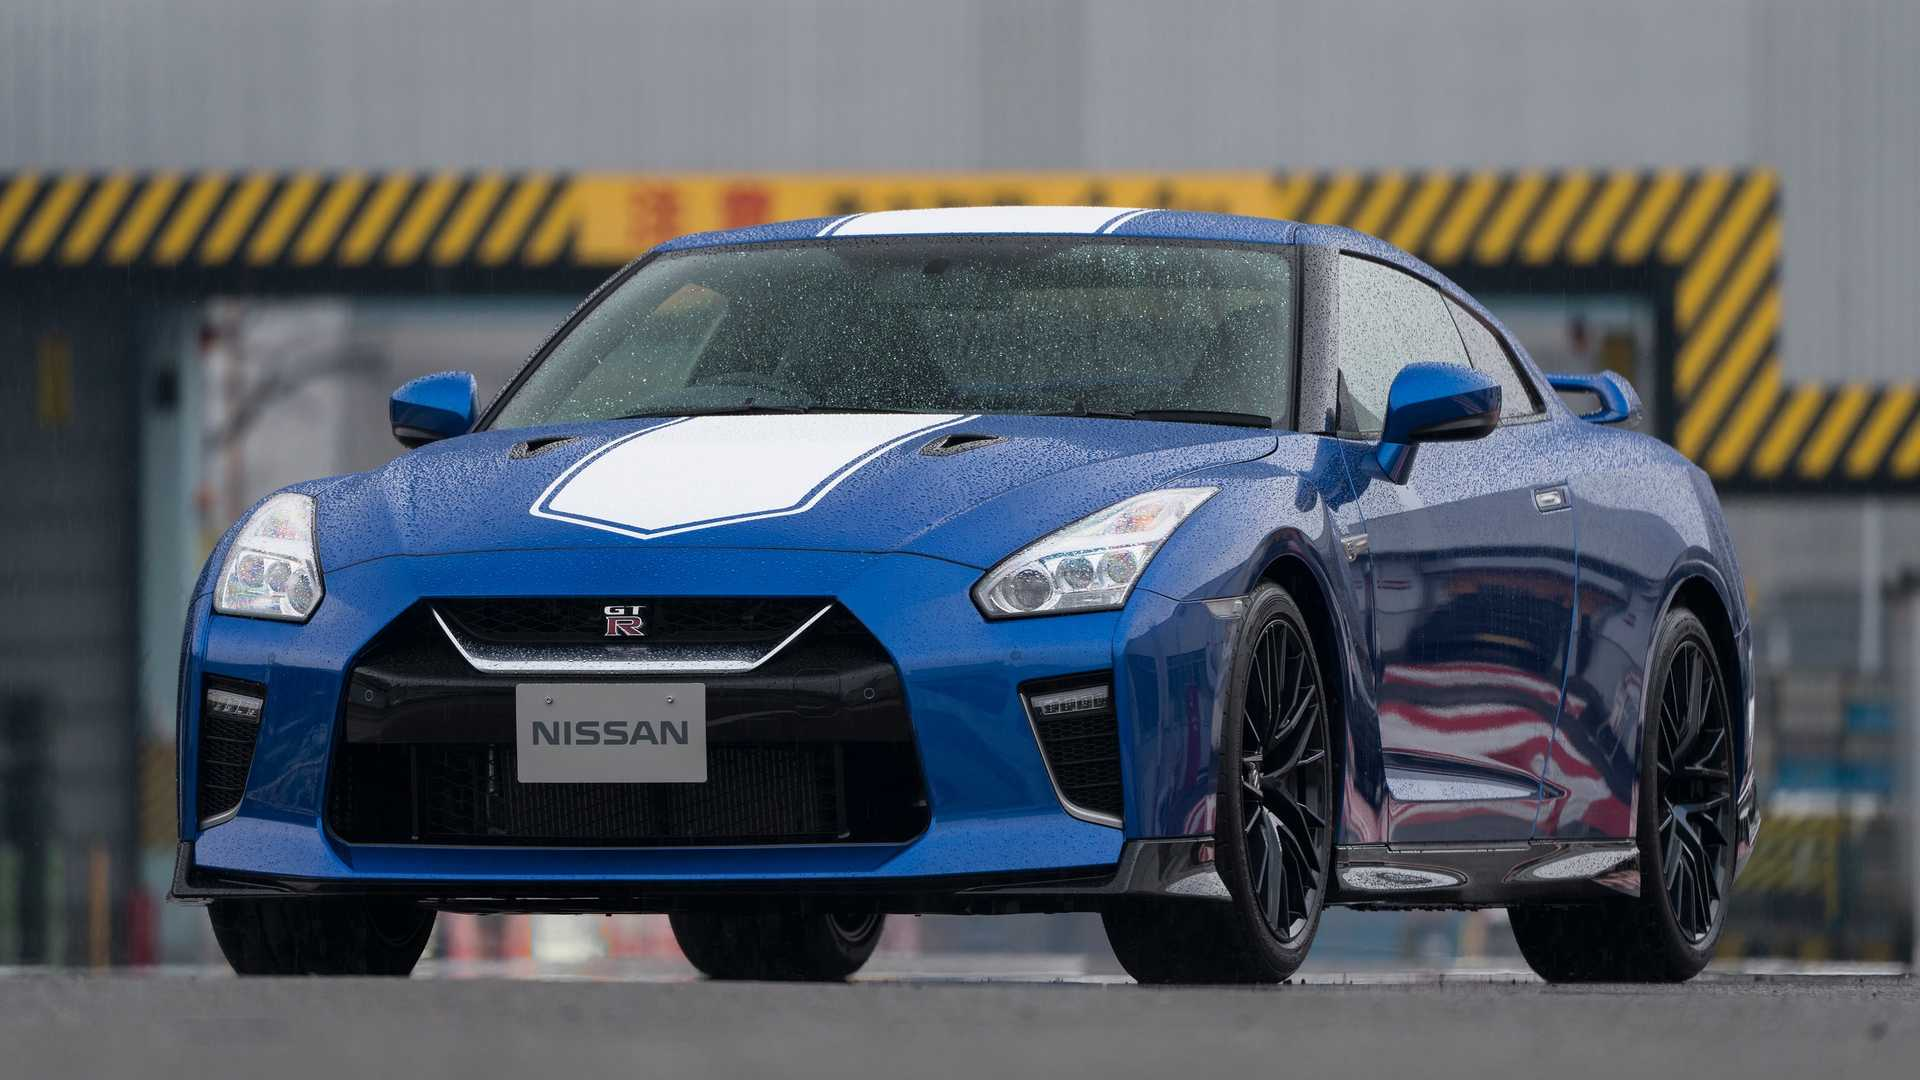 83 All New Nissan Gt R 36 2020 Price Spy Shoot with Nissan Gt R 36 2020 Price